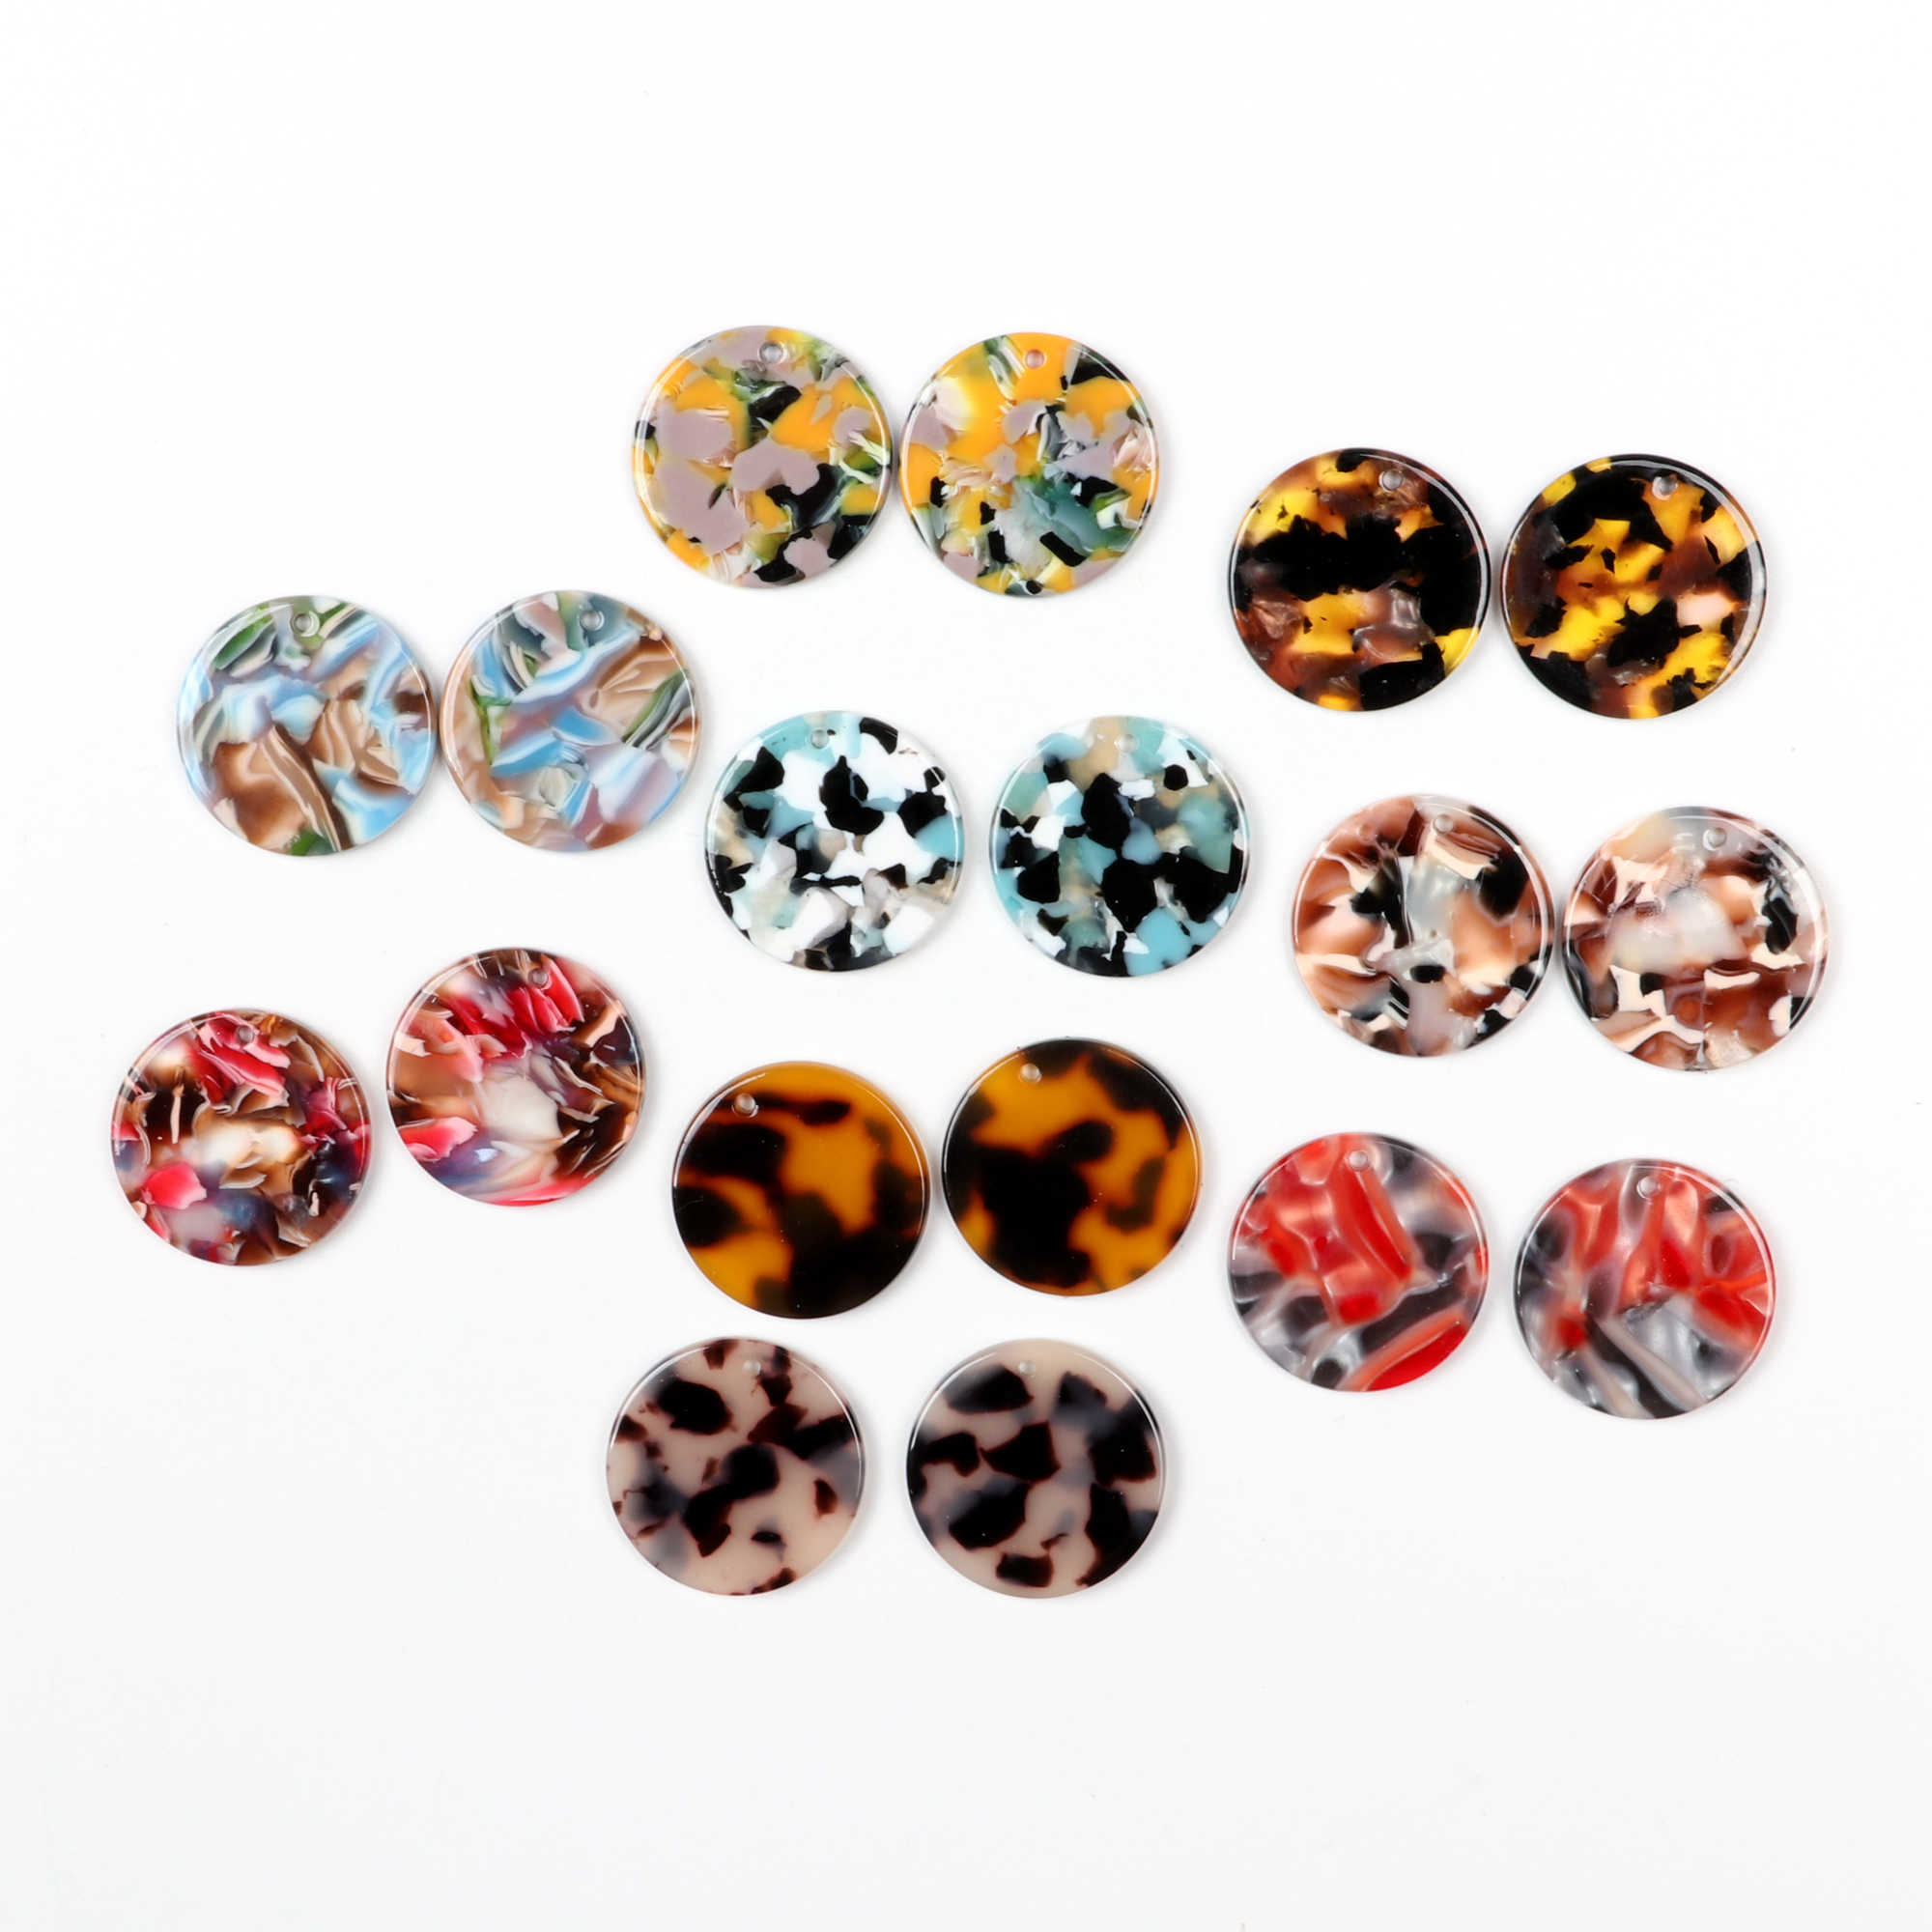 10pcs Tortoise shell acetate acrylic yellow leopard circle charm pendant jewelry earrings findings supplies 65mm 1164A